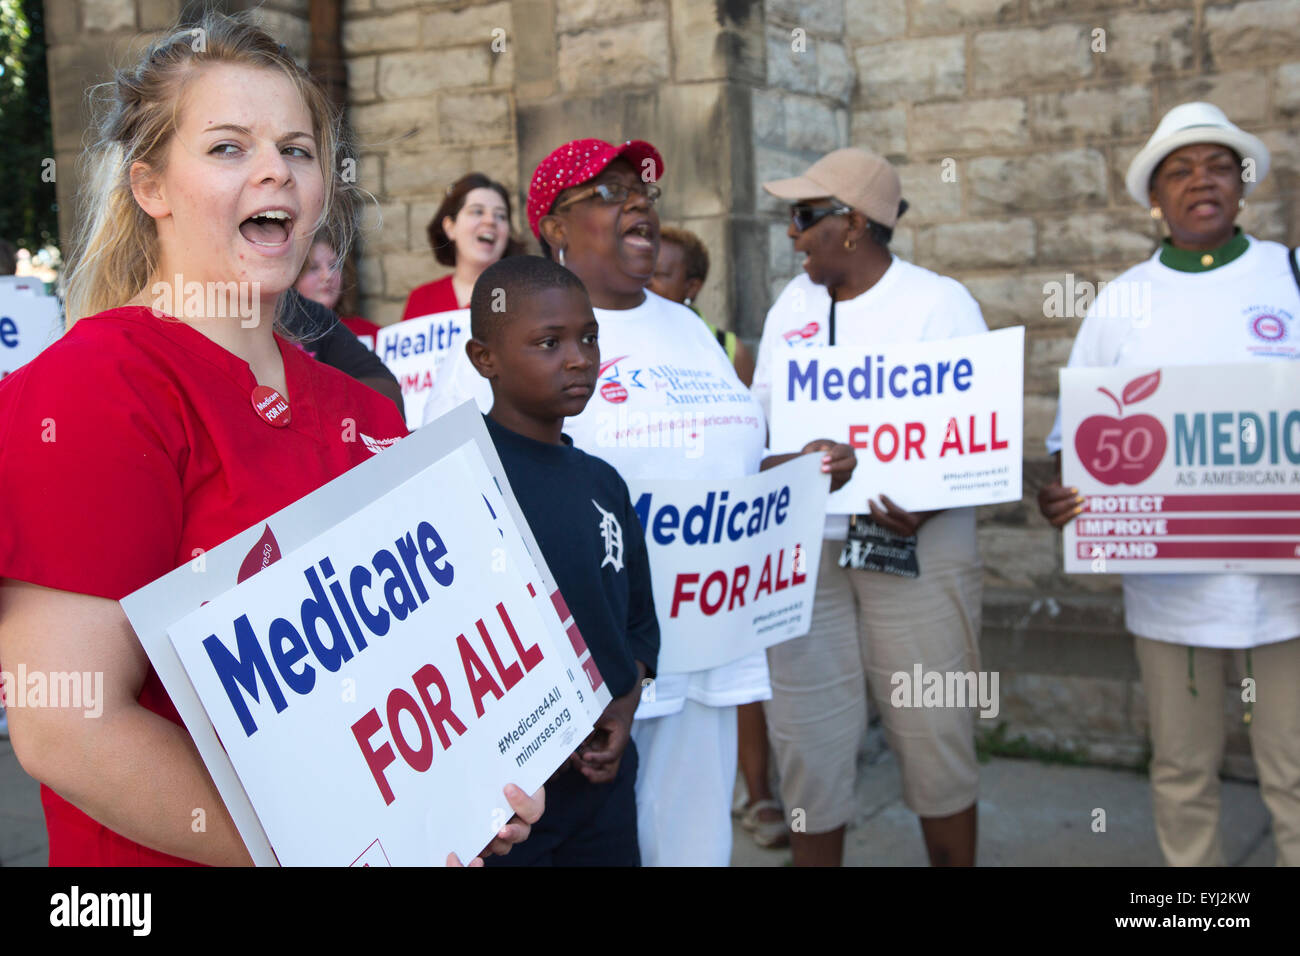 Detroit, Michigan, USA. 30th July, 2015.  Nurses, union members, and retirees rally to improve Medicare, as they - Stock Image